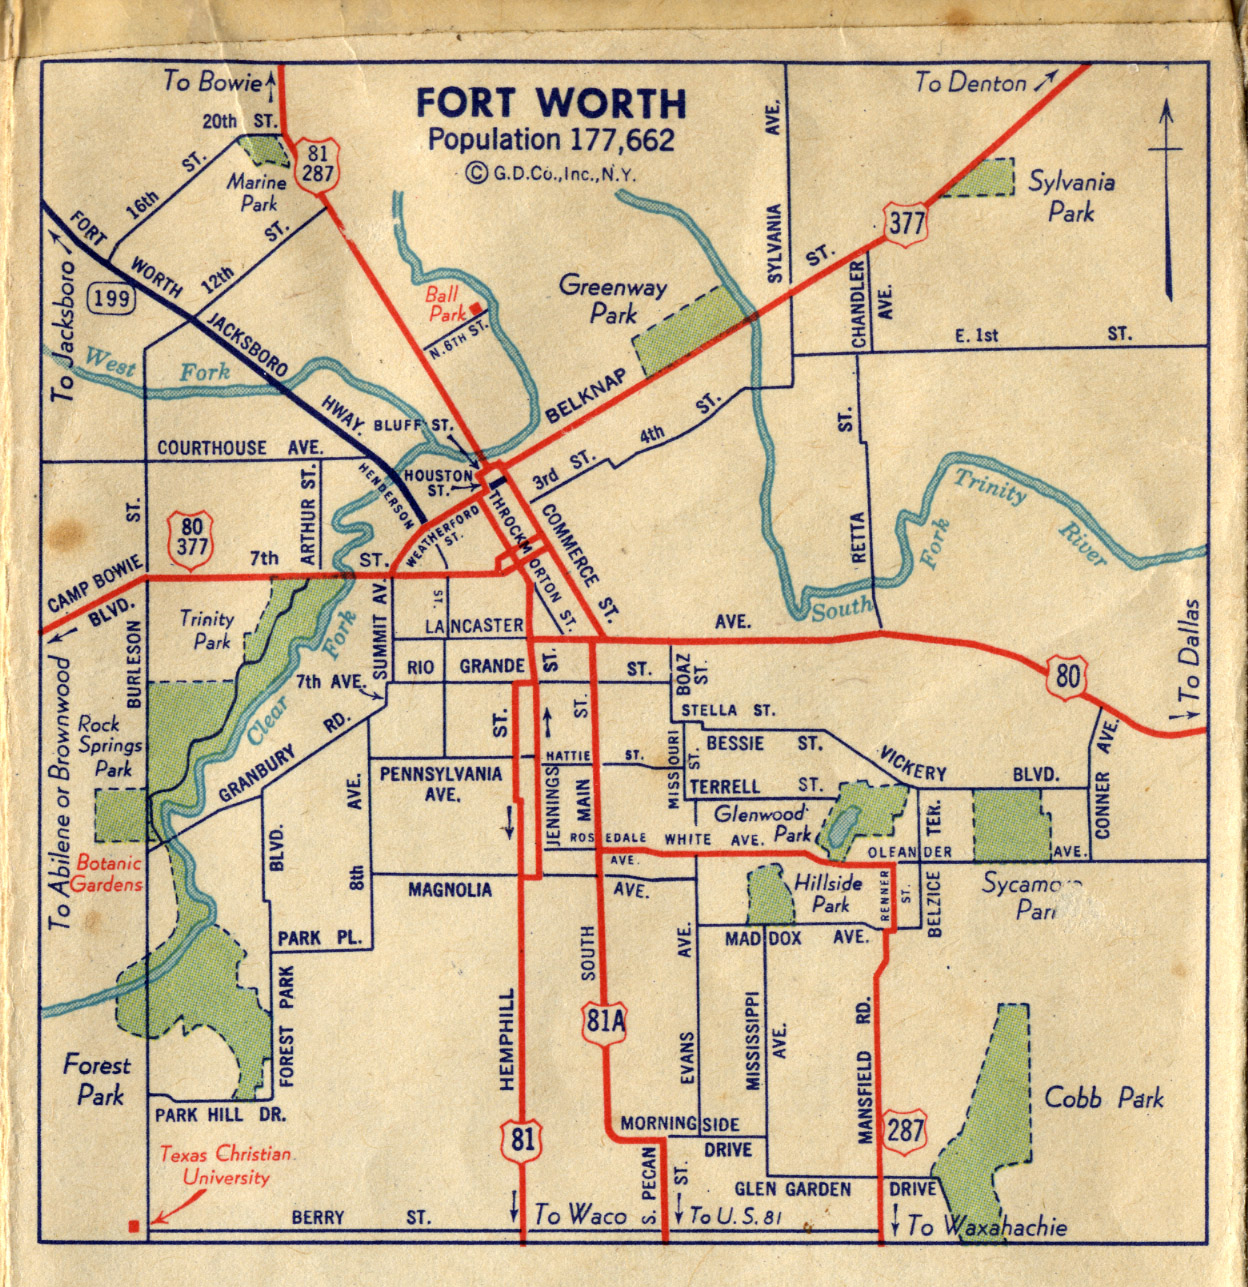 Old Highway Maps Of Texas - Map Of Downtown Fort Worth Texas